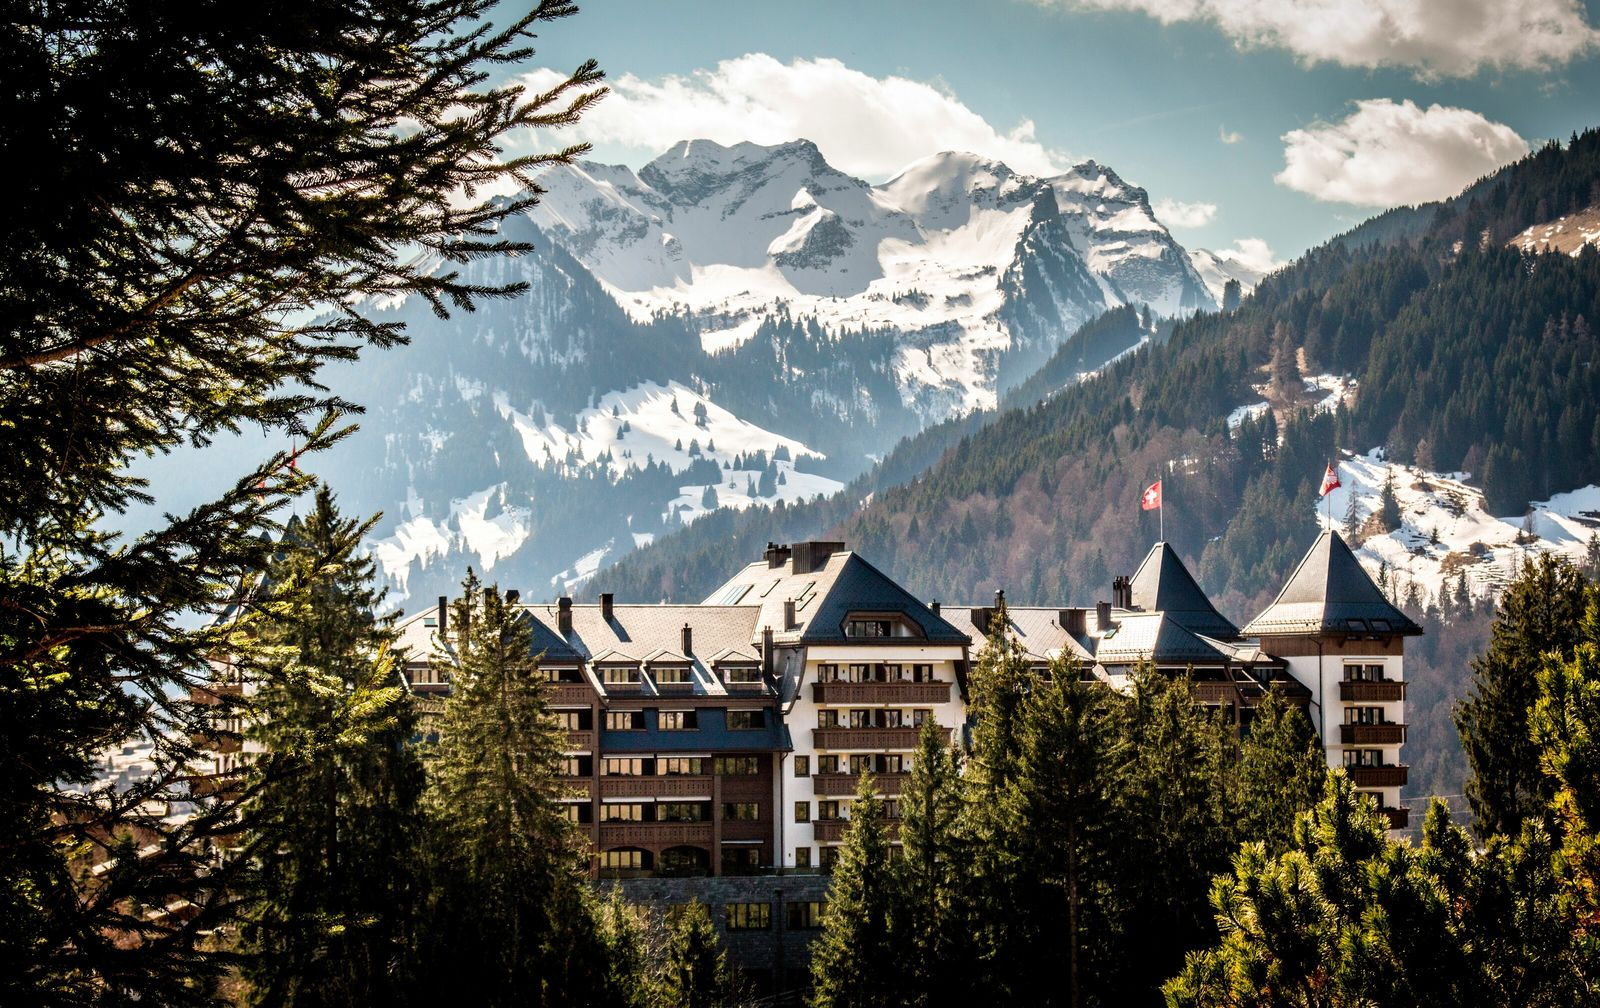 Gstaad is a timber-lined mountain town that's been twinned with Cannes for its glamorous restaurant scene.